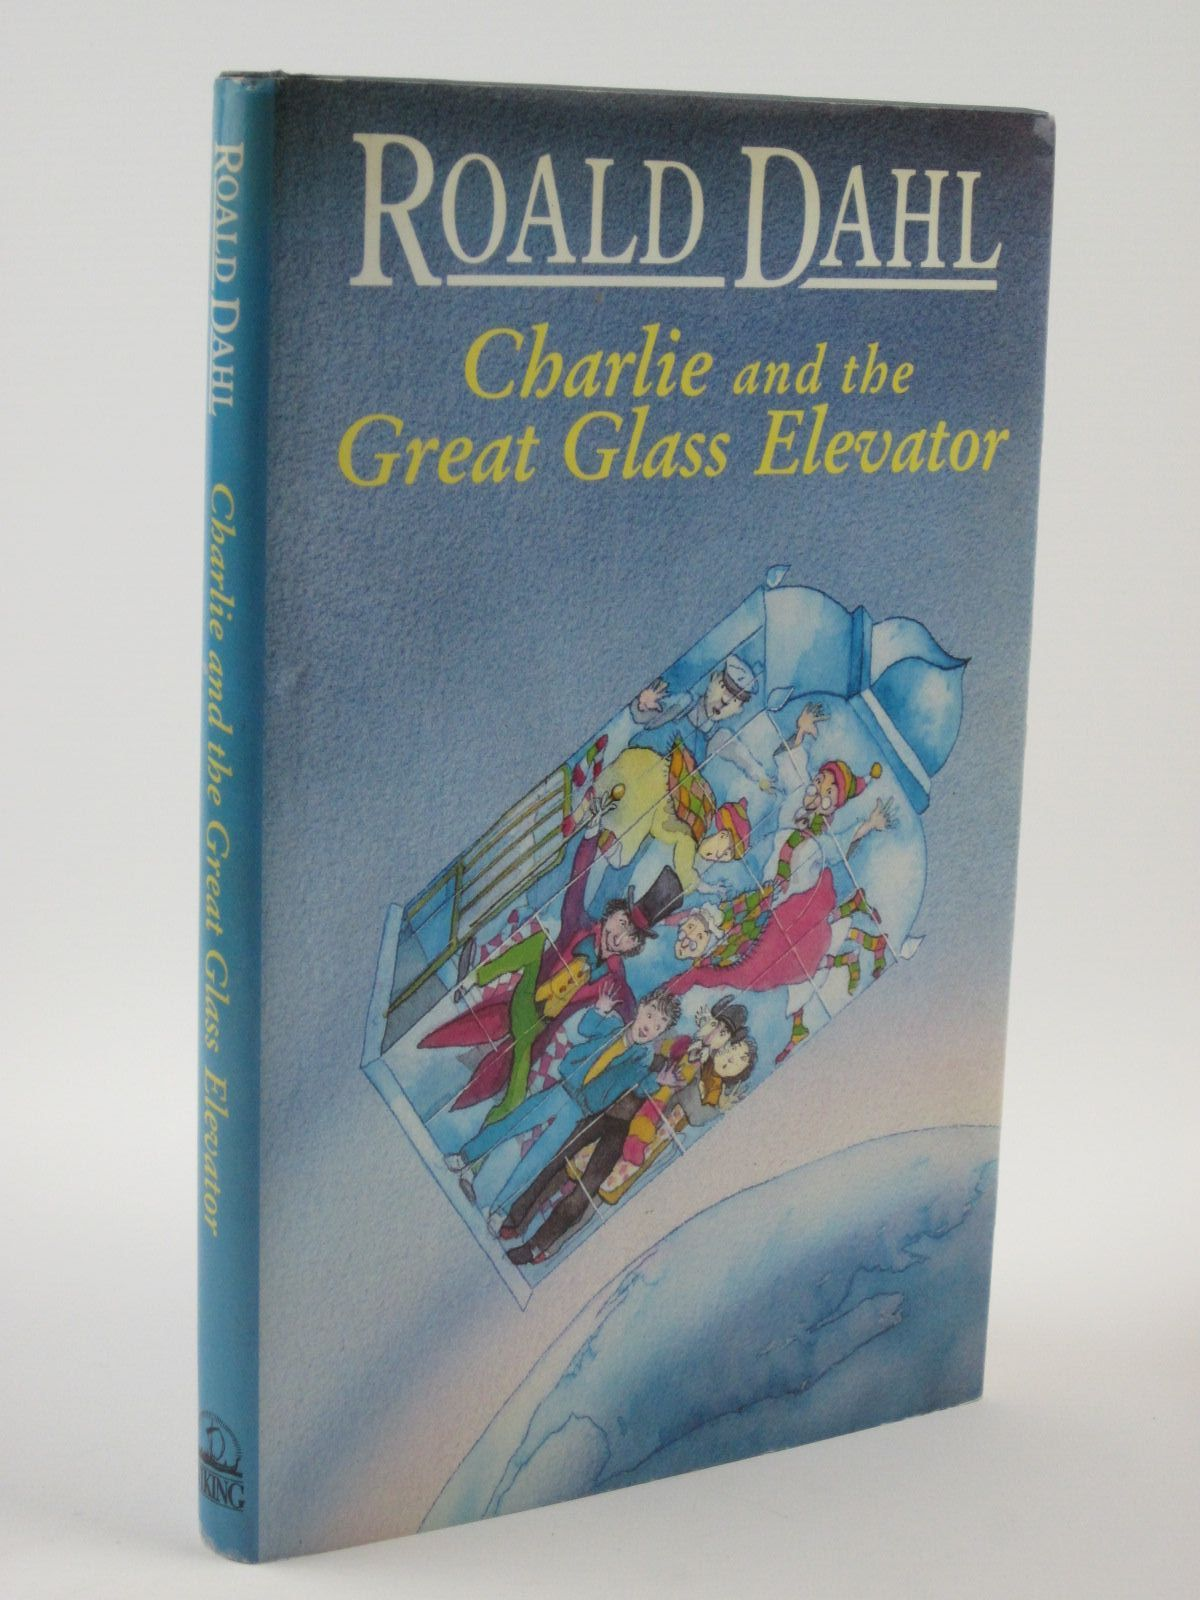 roald dahl charlie and the great glass elevator book report Charlie and the great glass elevator book by roald dahl - audiobook full - duration: 2:49:45 daniele komar 430 views.